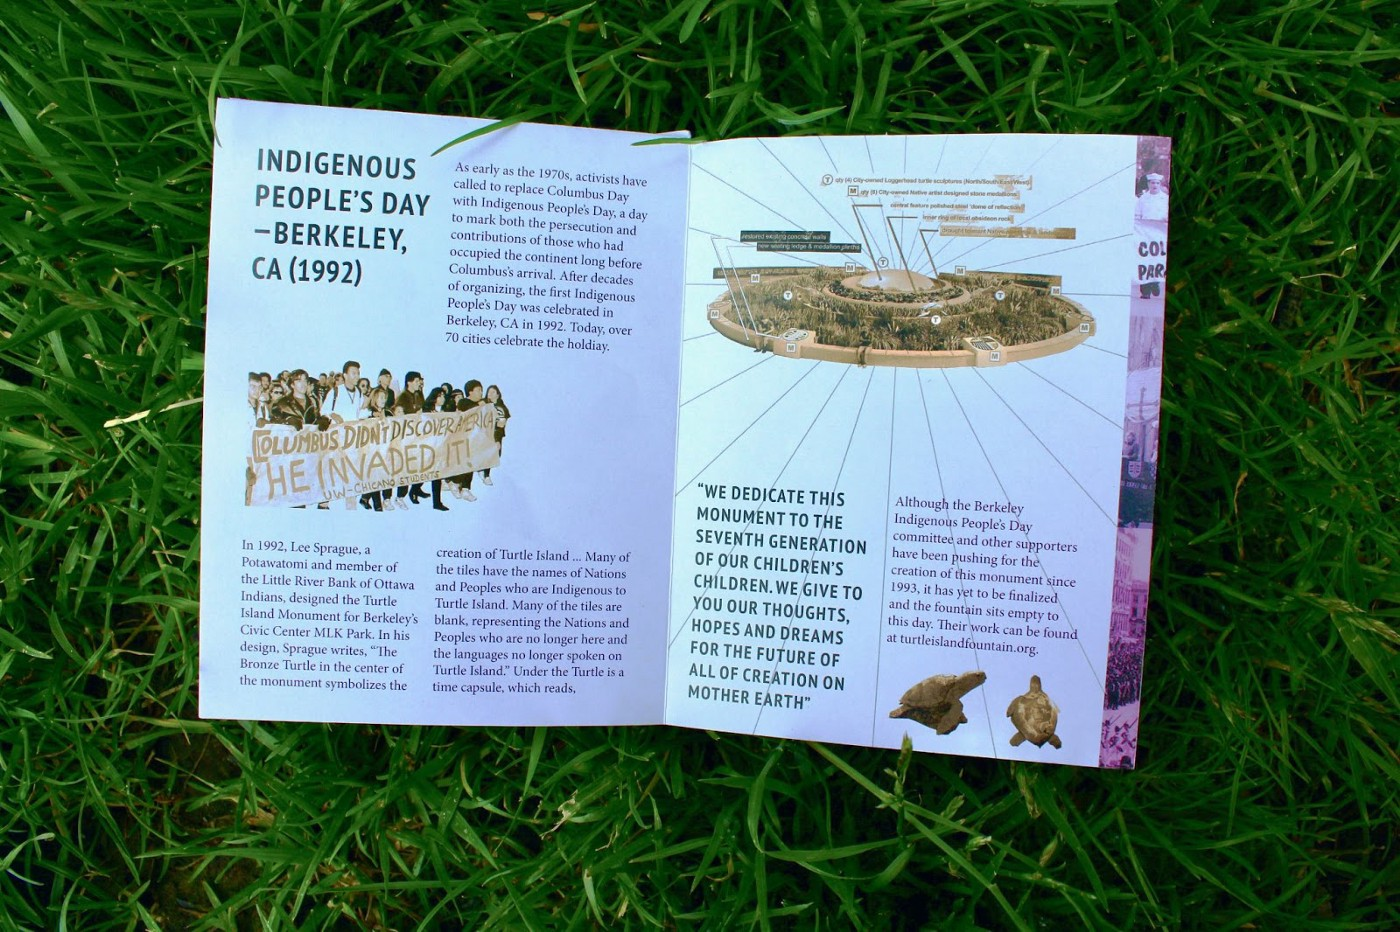 Columbus Zine Case Study 2: Indigenous People's Day Counter Monuments in Berkeley, CA in grass